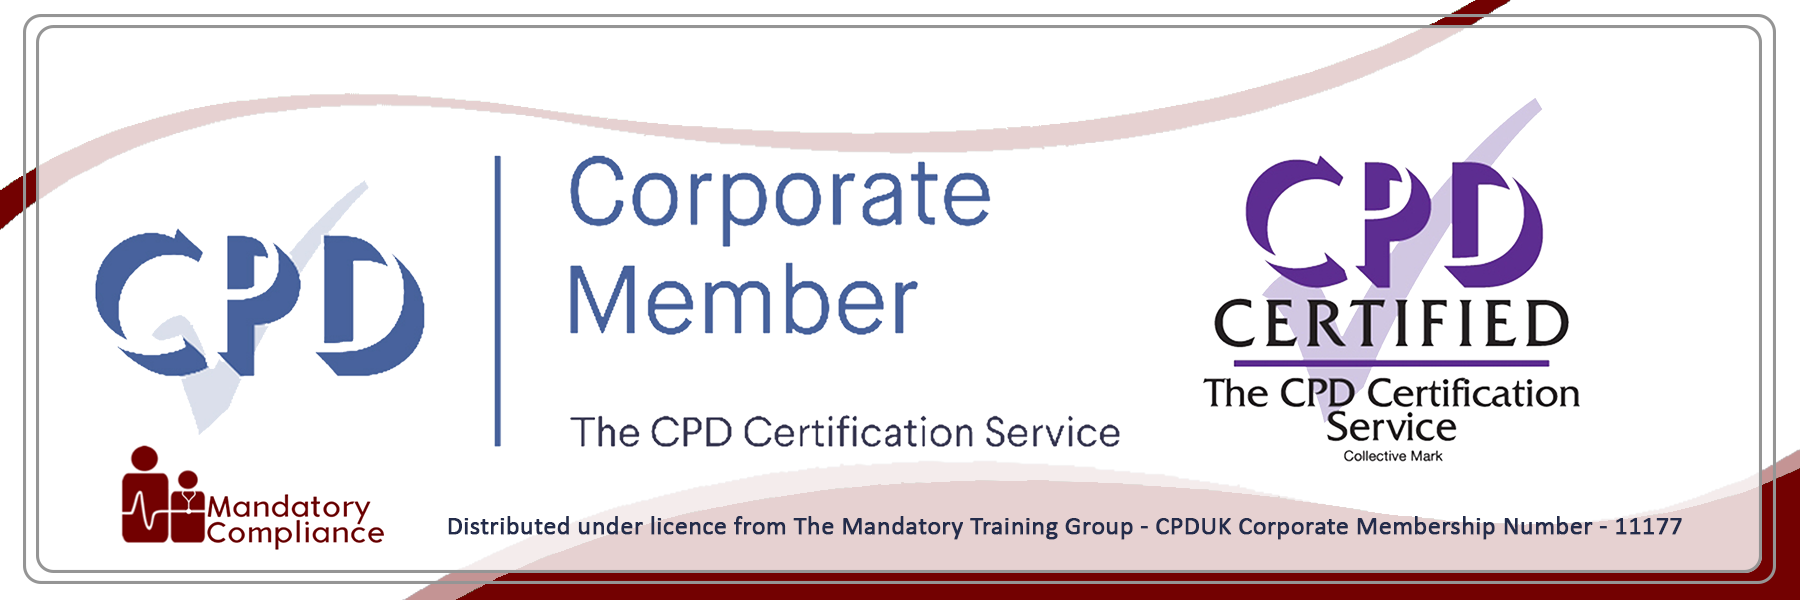 Care Certificate Standard 13 - Online Training Course - CPD Accredited - Mandatory Compliance UK -